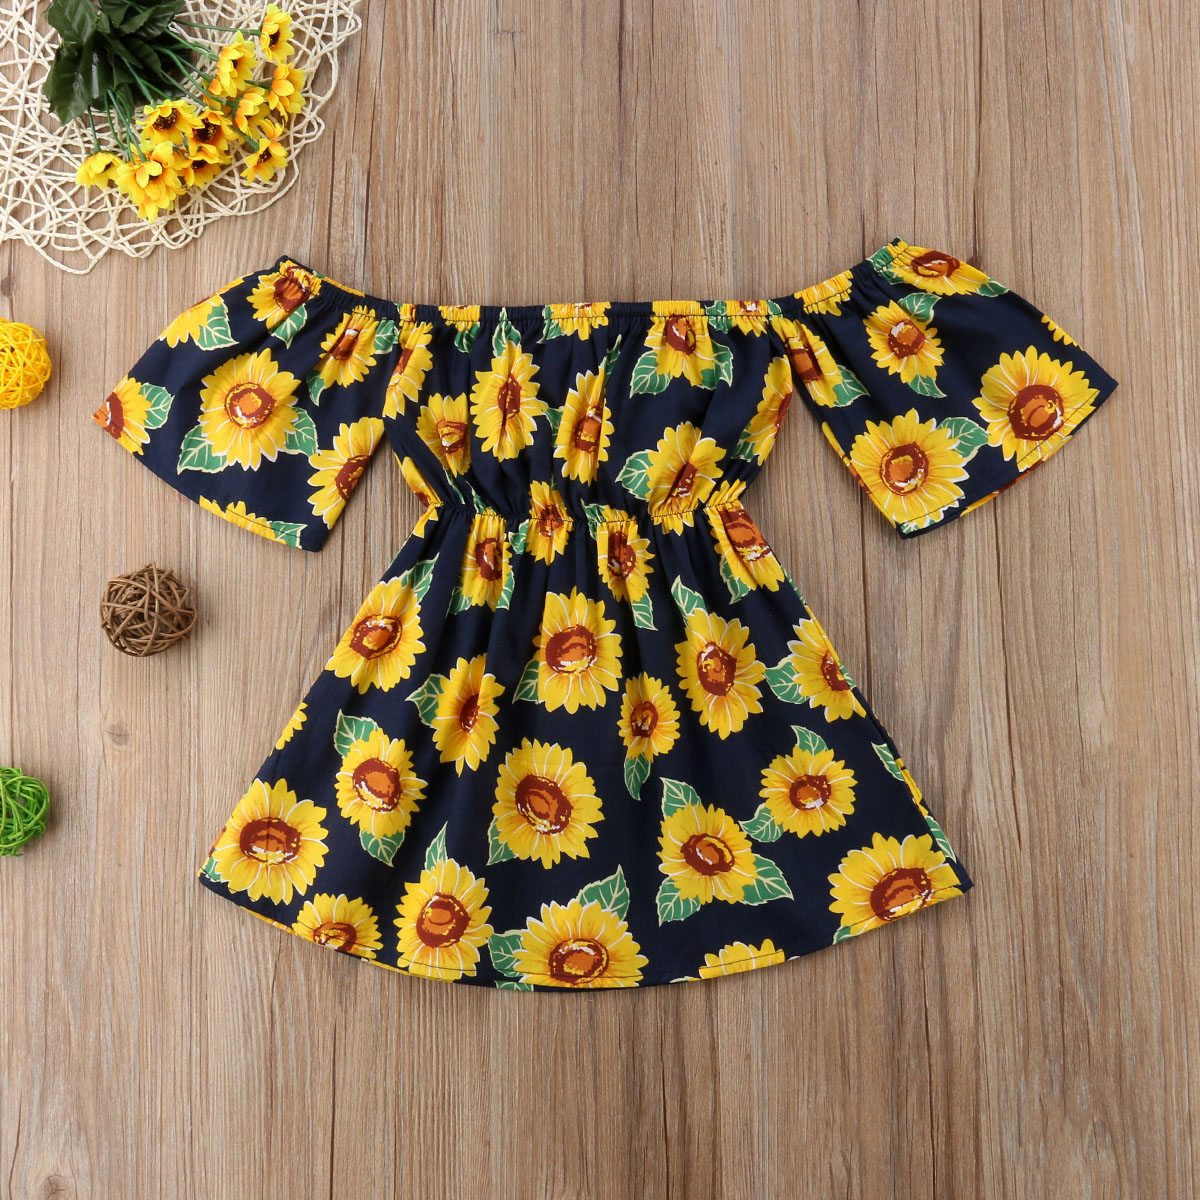 Newest Kid Baby Girl Dress Sunflower Print Off Shoulder Sundress Party Pageant Short Sleeve Tutu Dress Fashion Clothes 1-6T